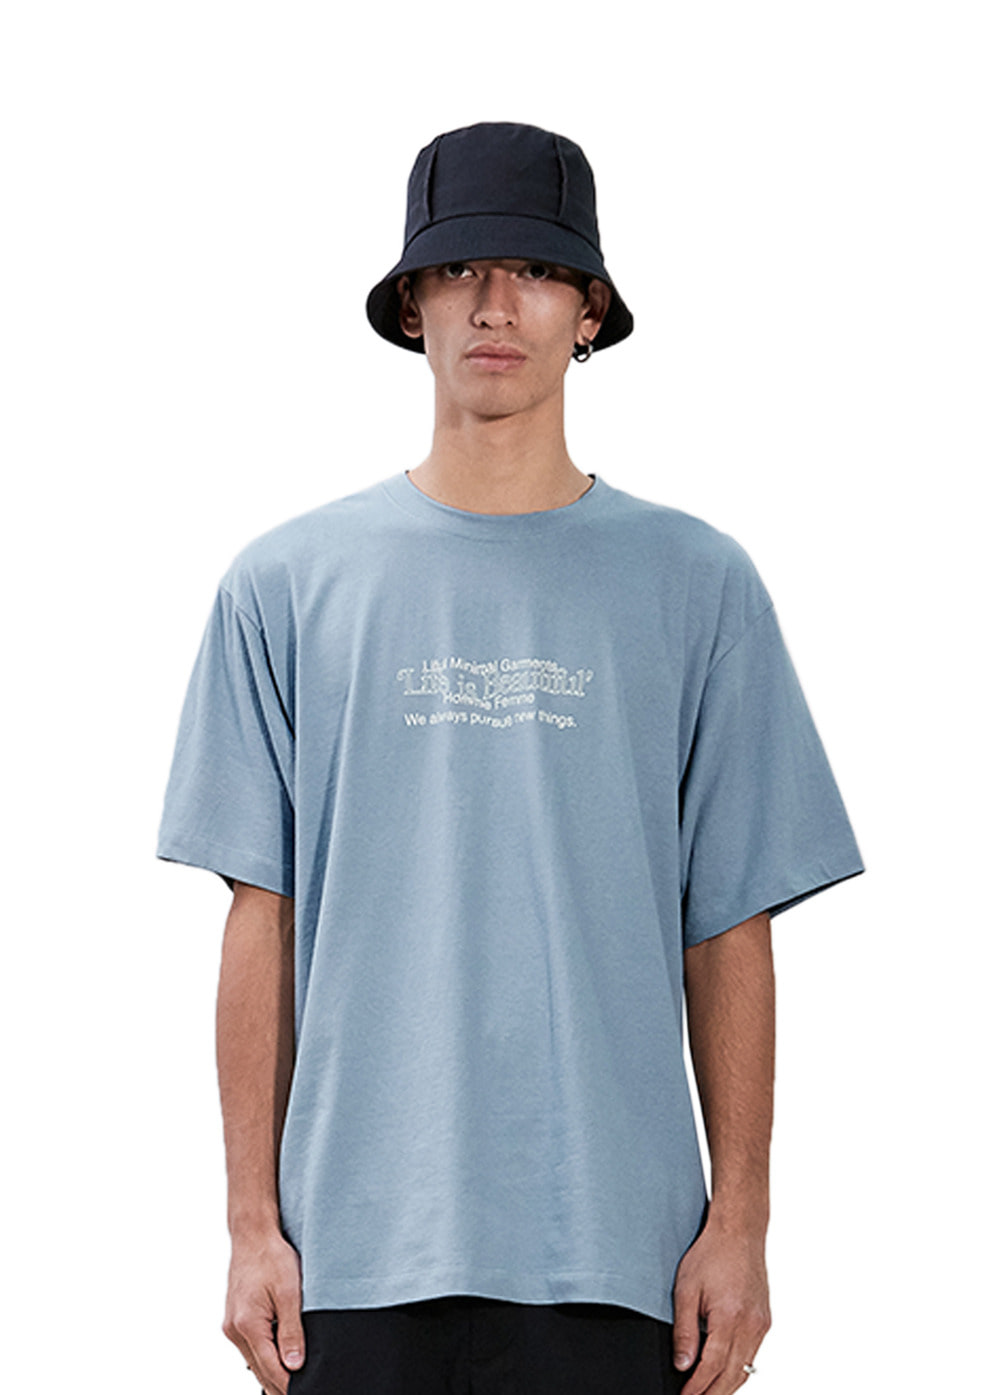 WAVY SLOGAN LOGO TEE blue gray